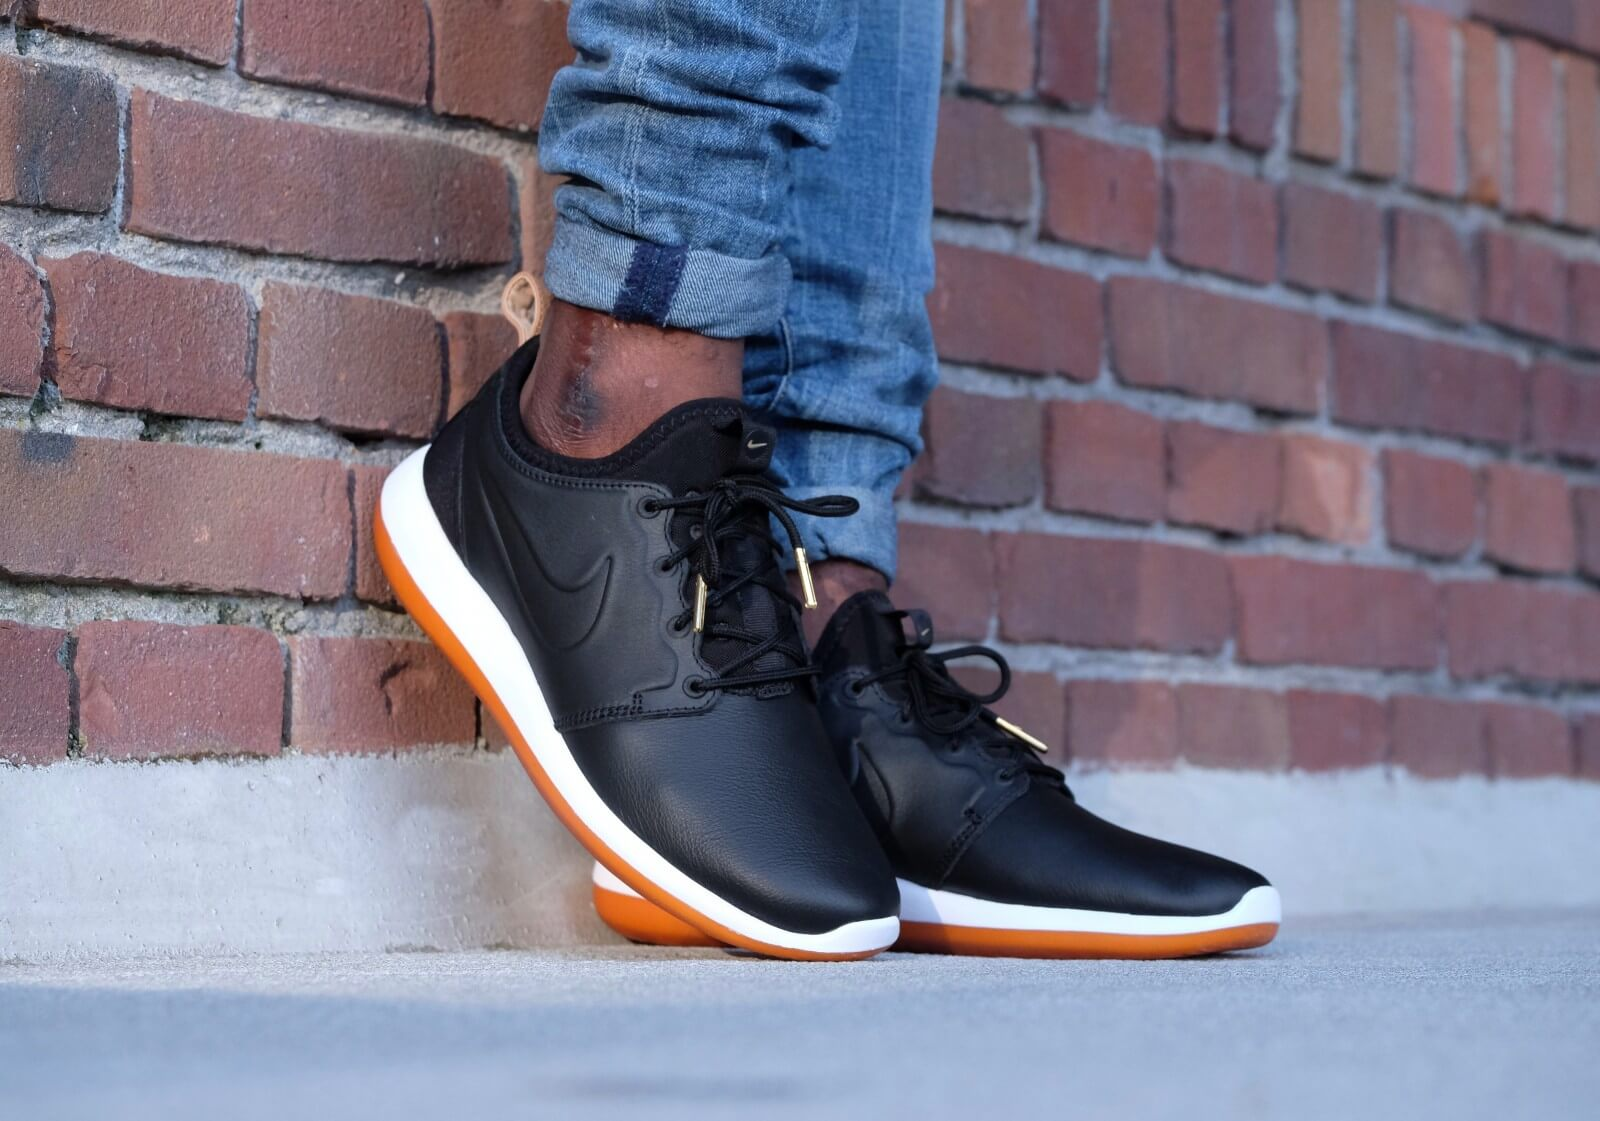 san francisco 471c6 85a50 ... Nike Roshe Two Leather PRM Blackblack-white-gum med brown - 881987-001  ...